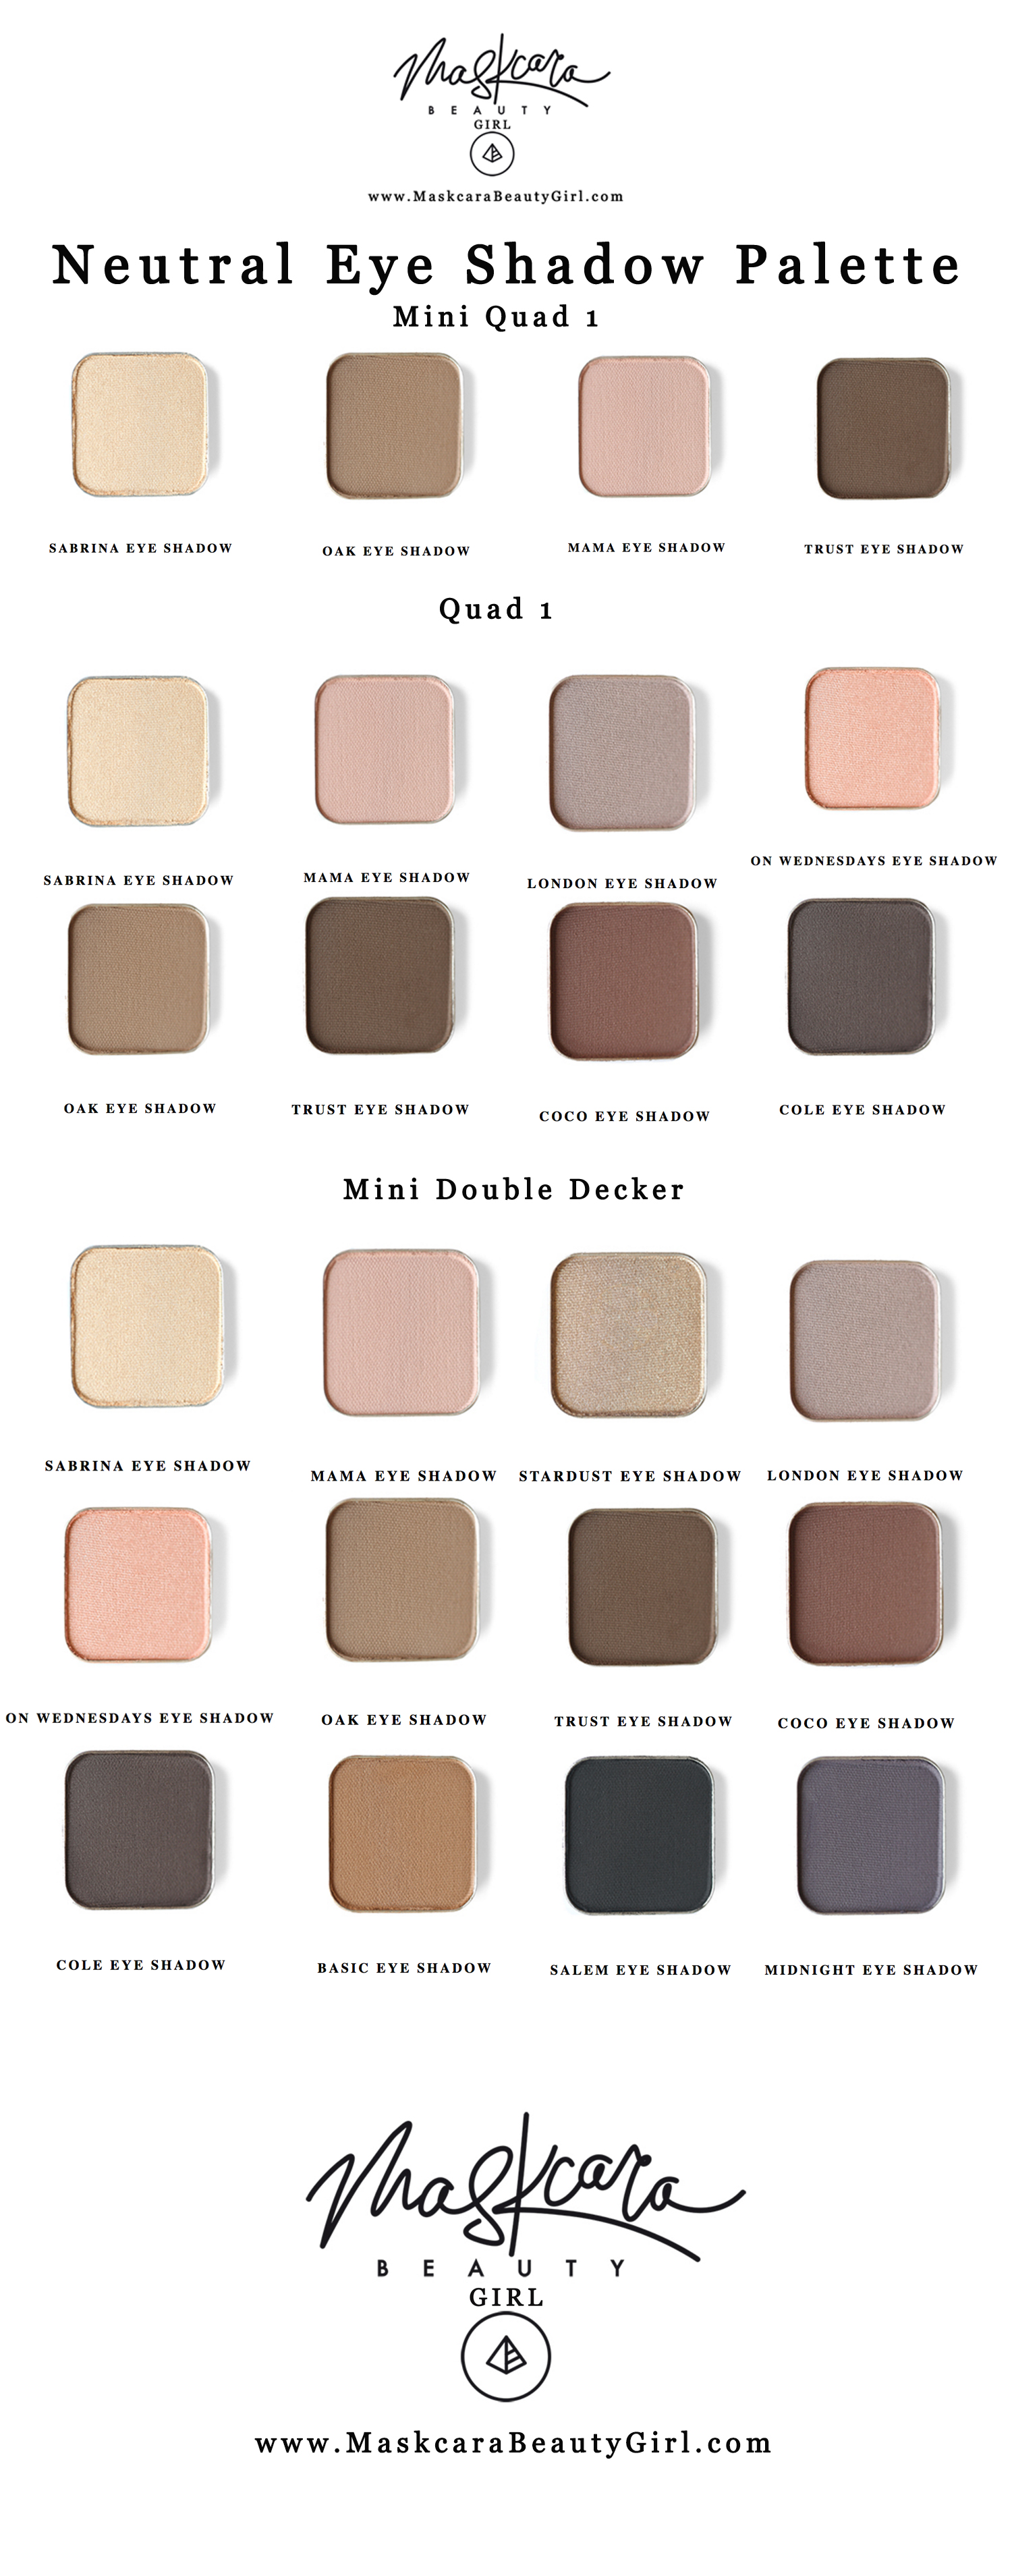 Best Neutral Eyeshadow Palette with Maskcara Makeup, with www.MaskcaraBeautyGirl.com